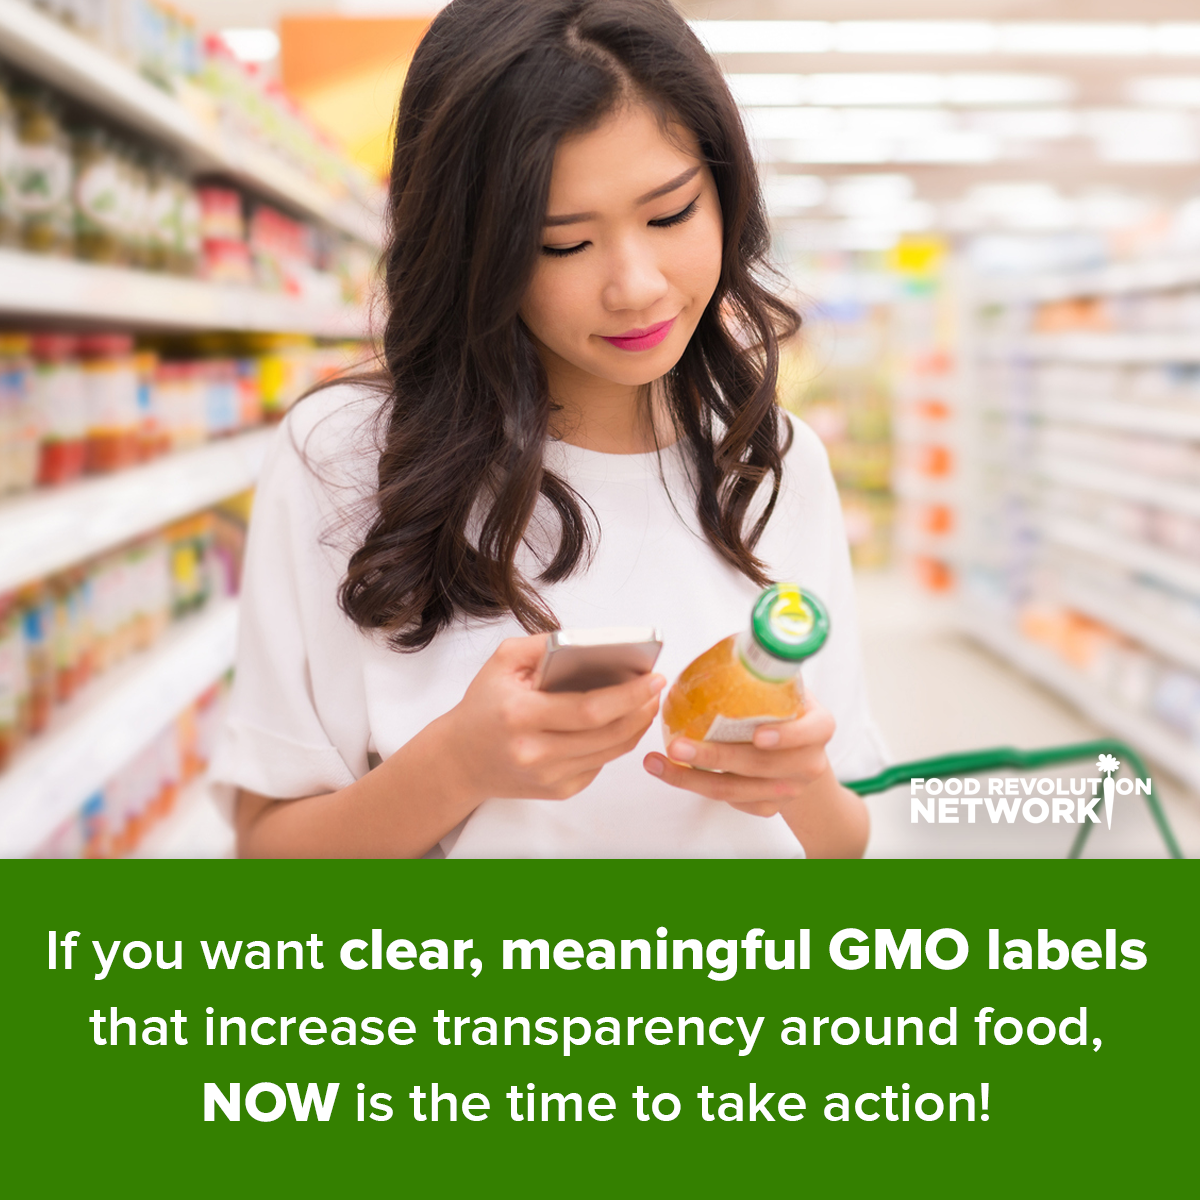 GMO labeling US: Take Action